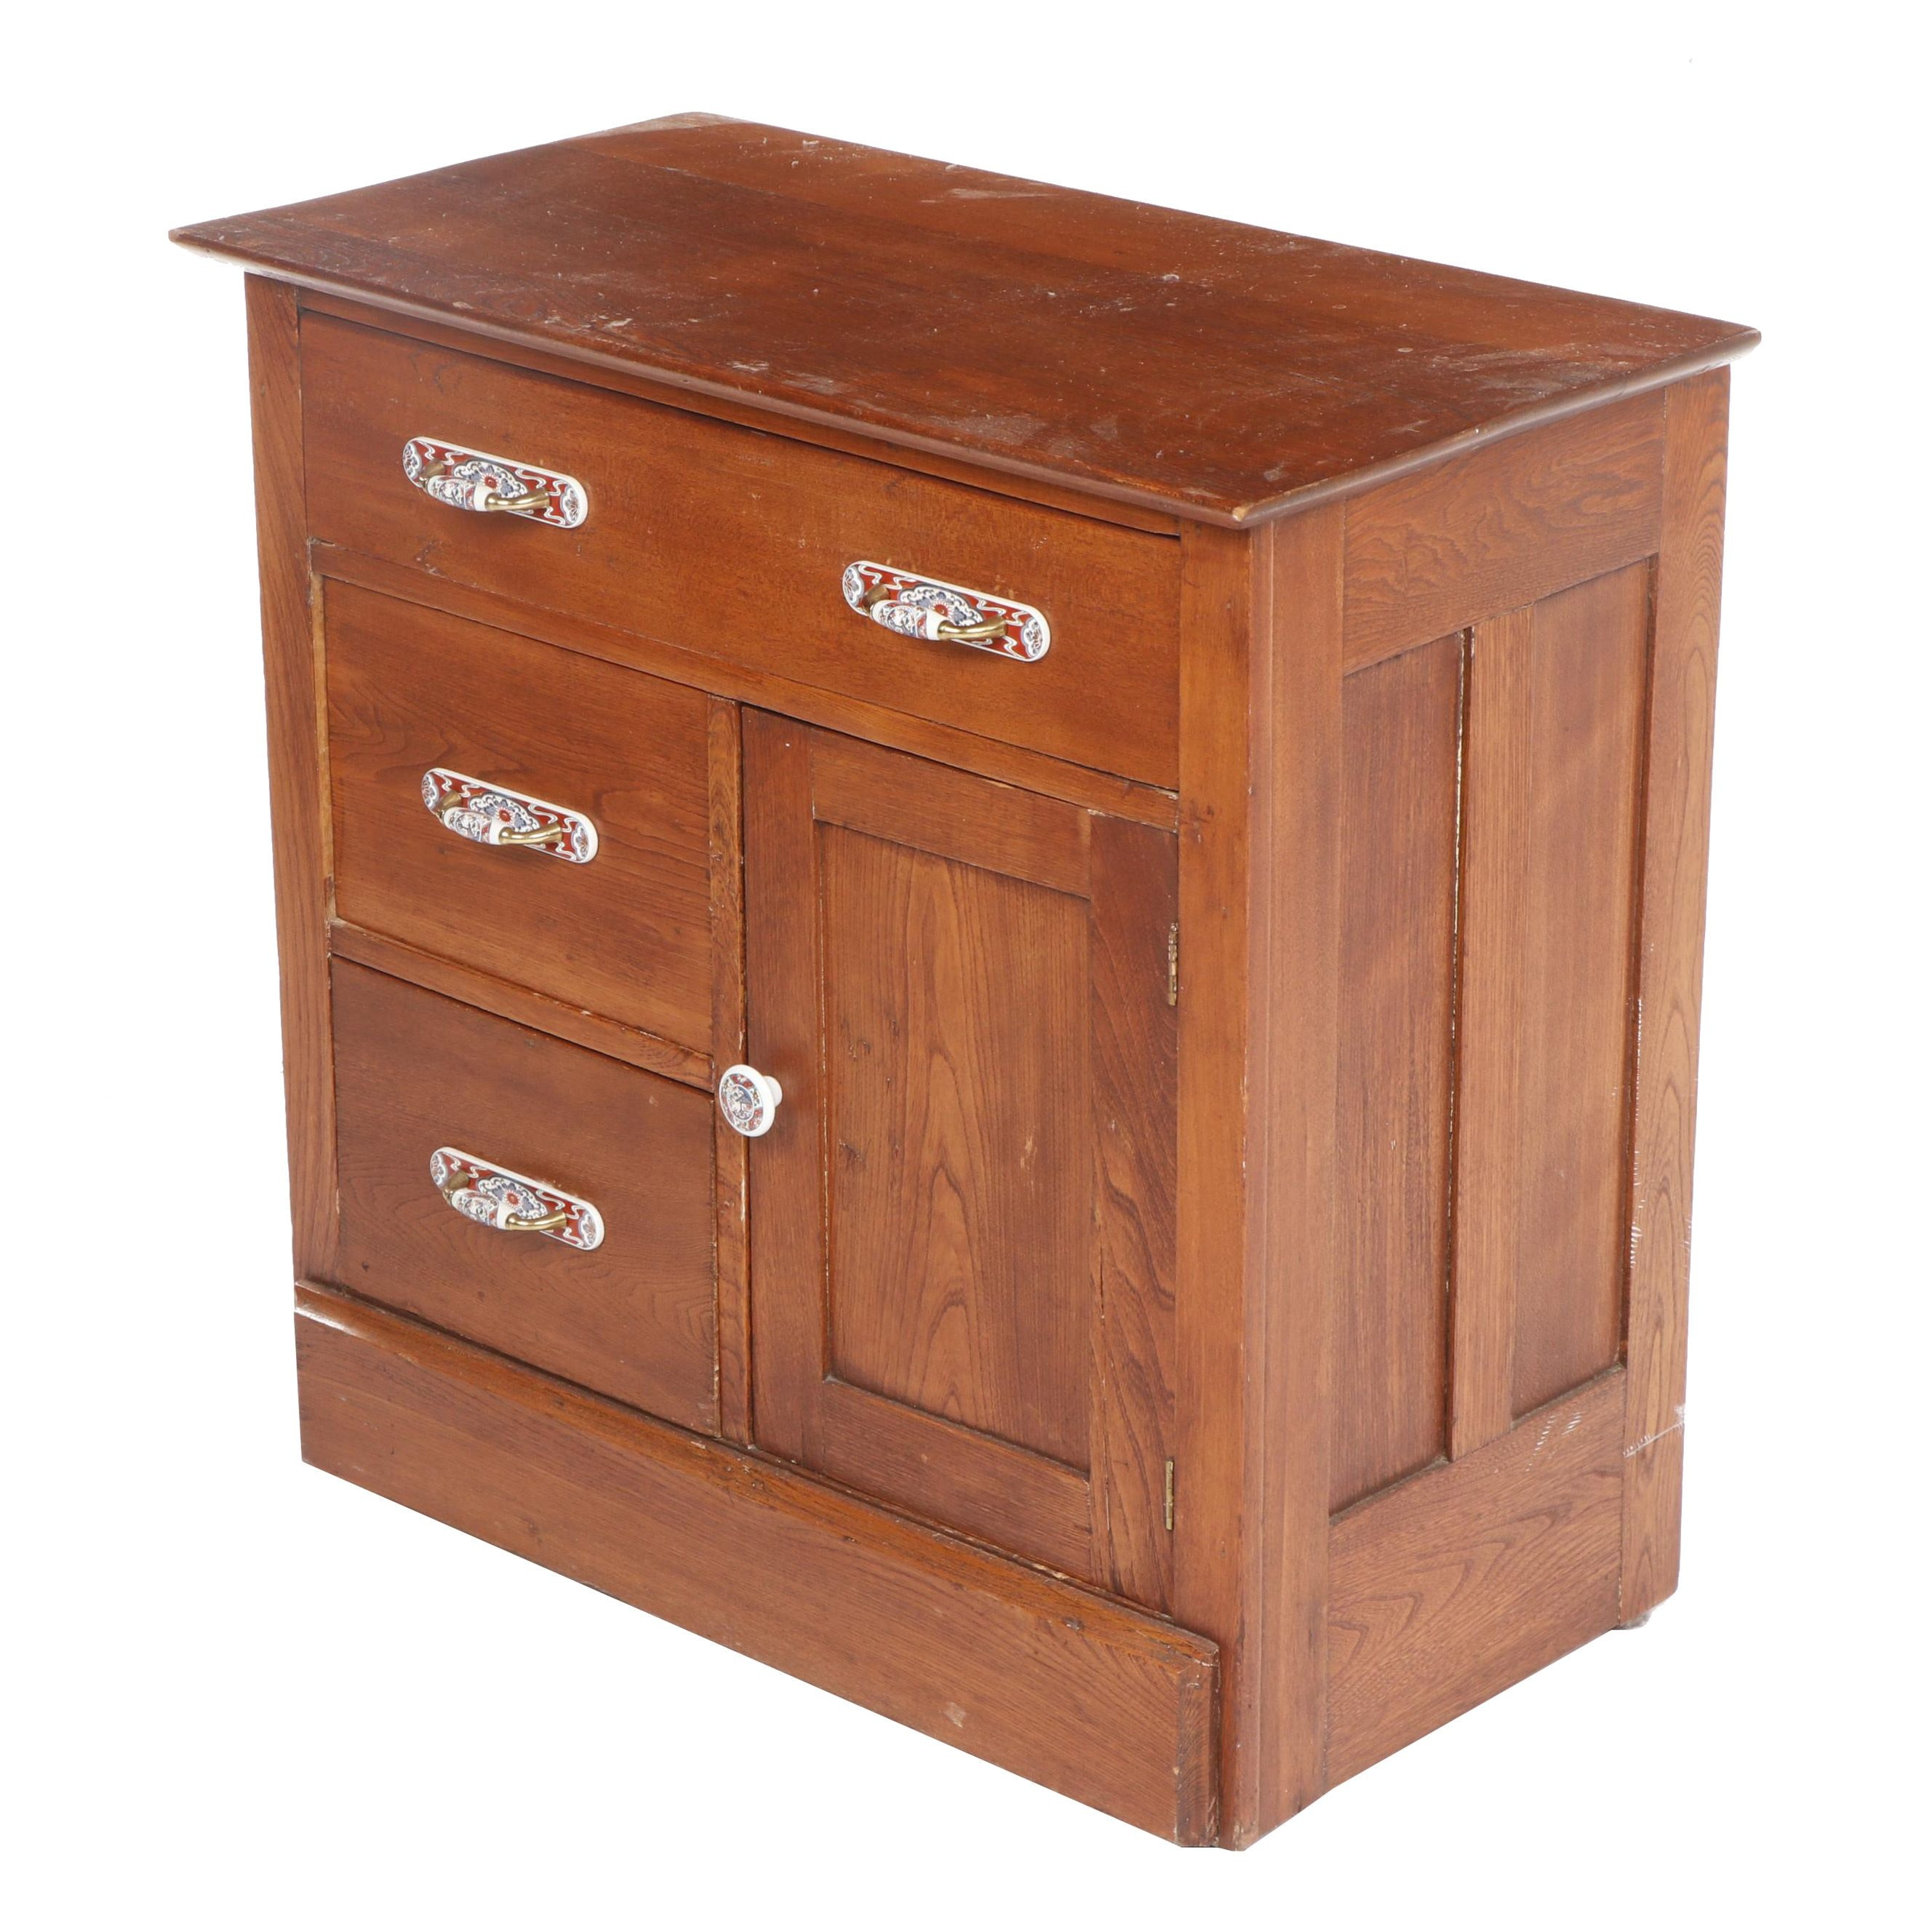 Elm Side Cabinet with Hand-Painted Ceramic Handles